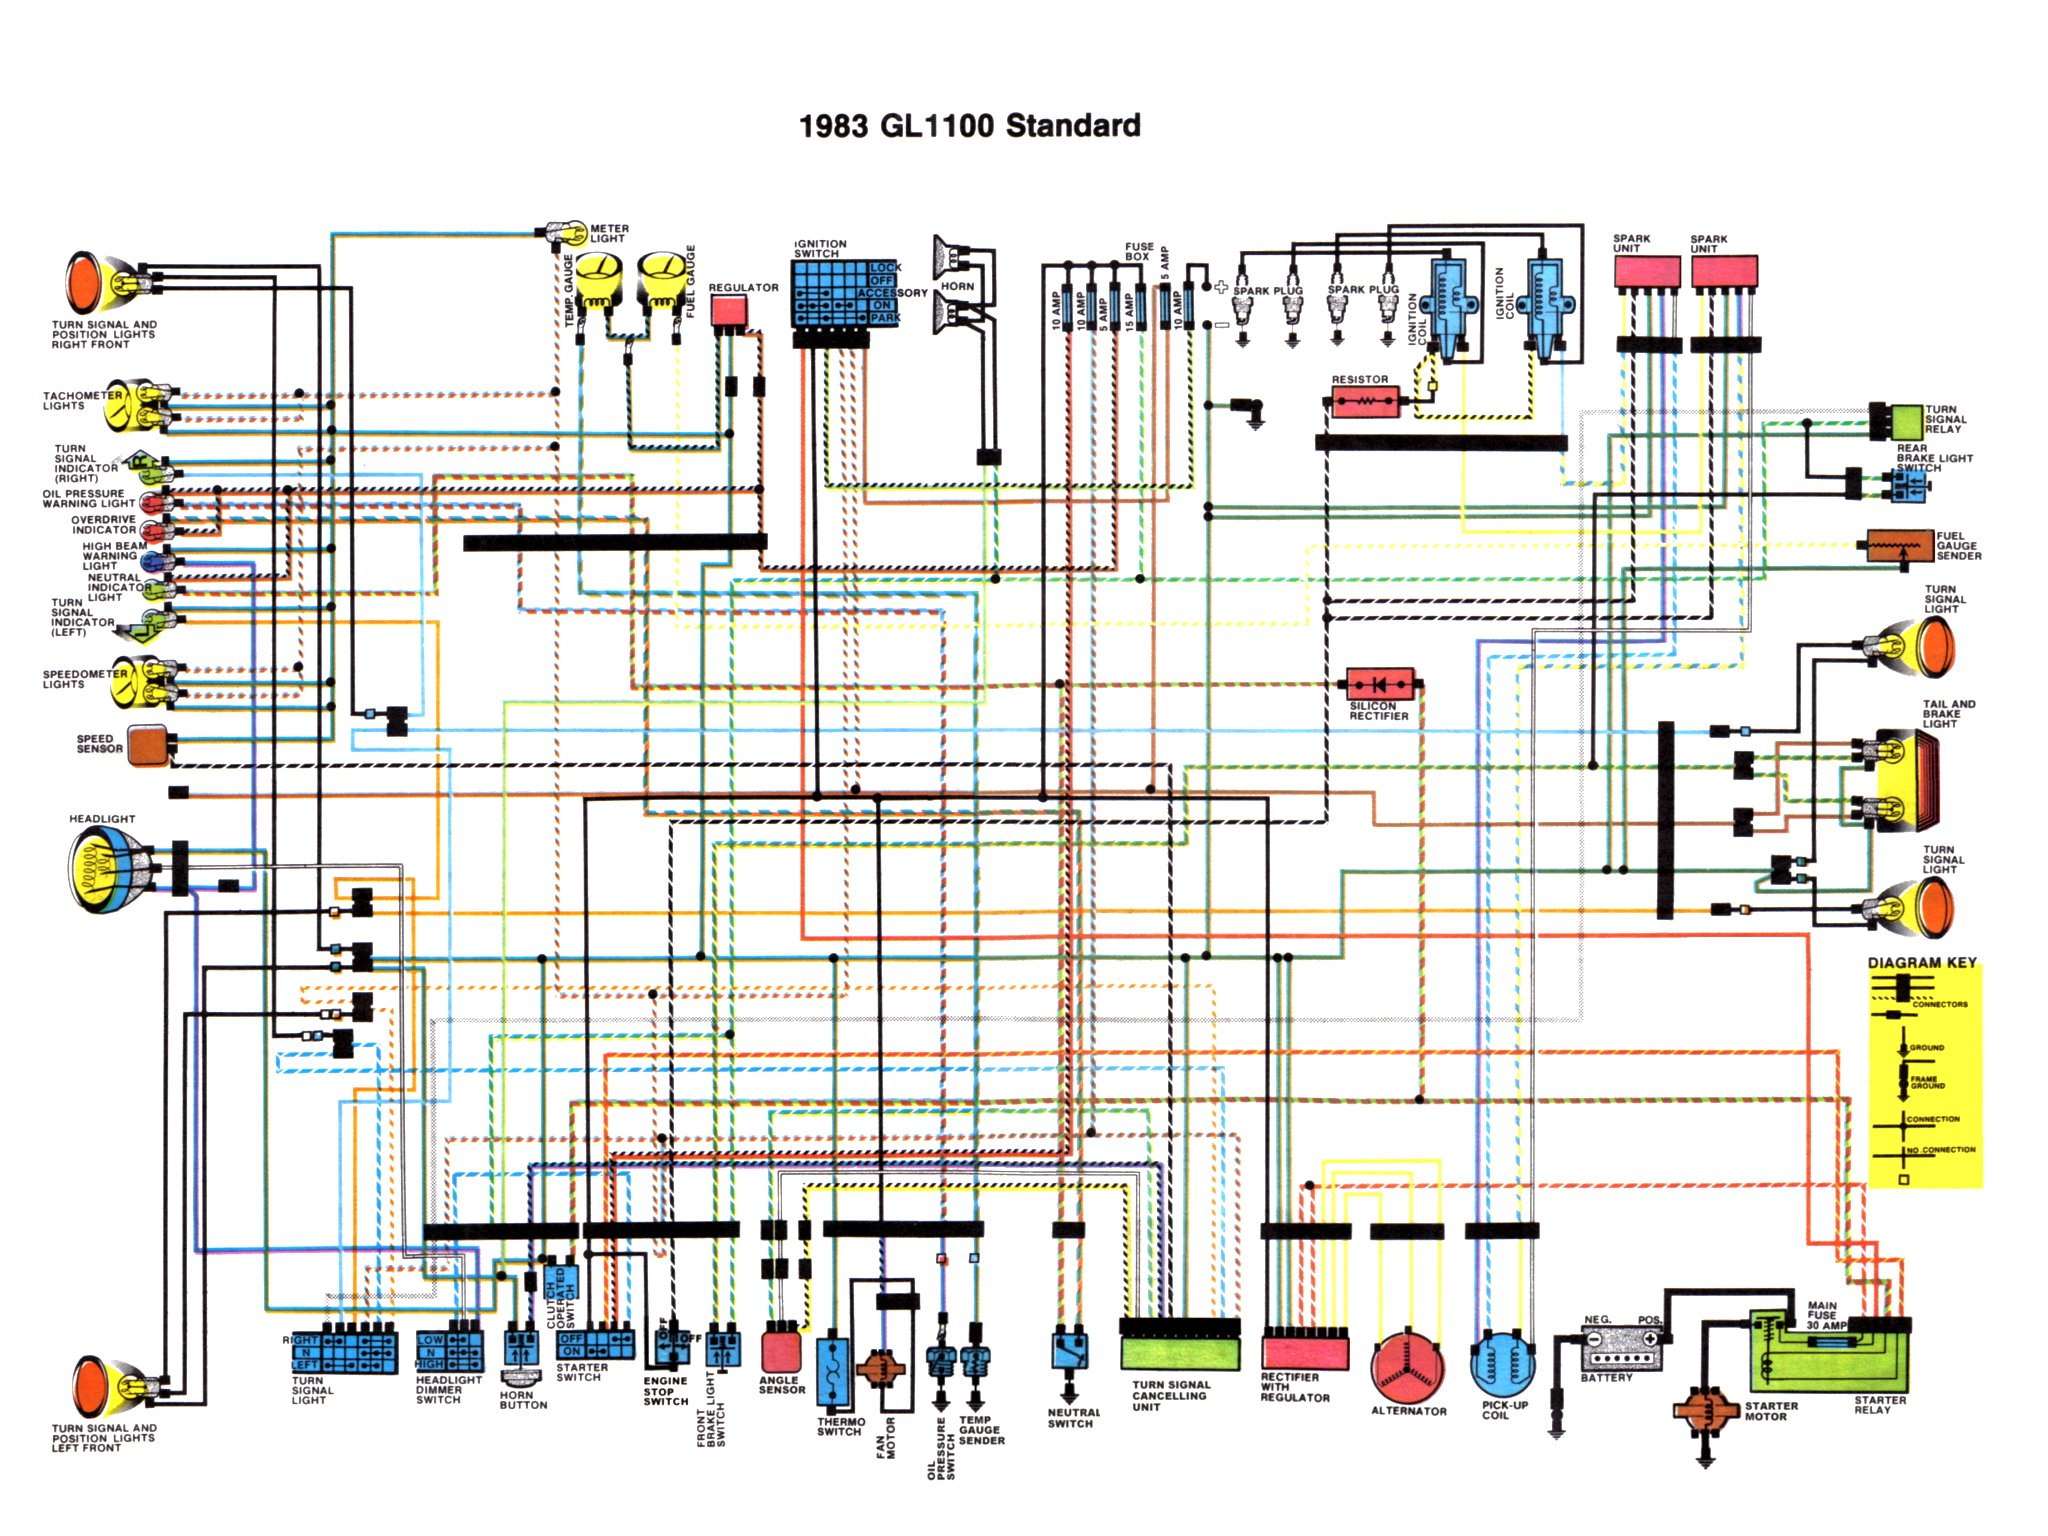 2002 Honda 400ex Headlight Wiring Diagram Detailed Schematic Diagrams Trx400ex 2001 Diagramwiring And Civic Harness